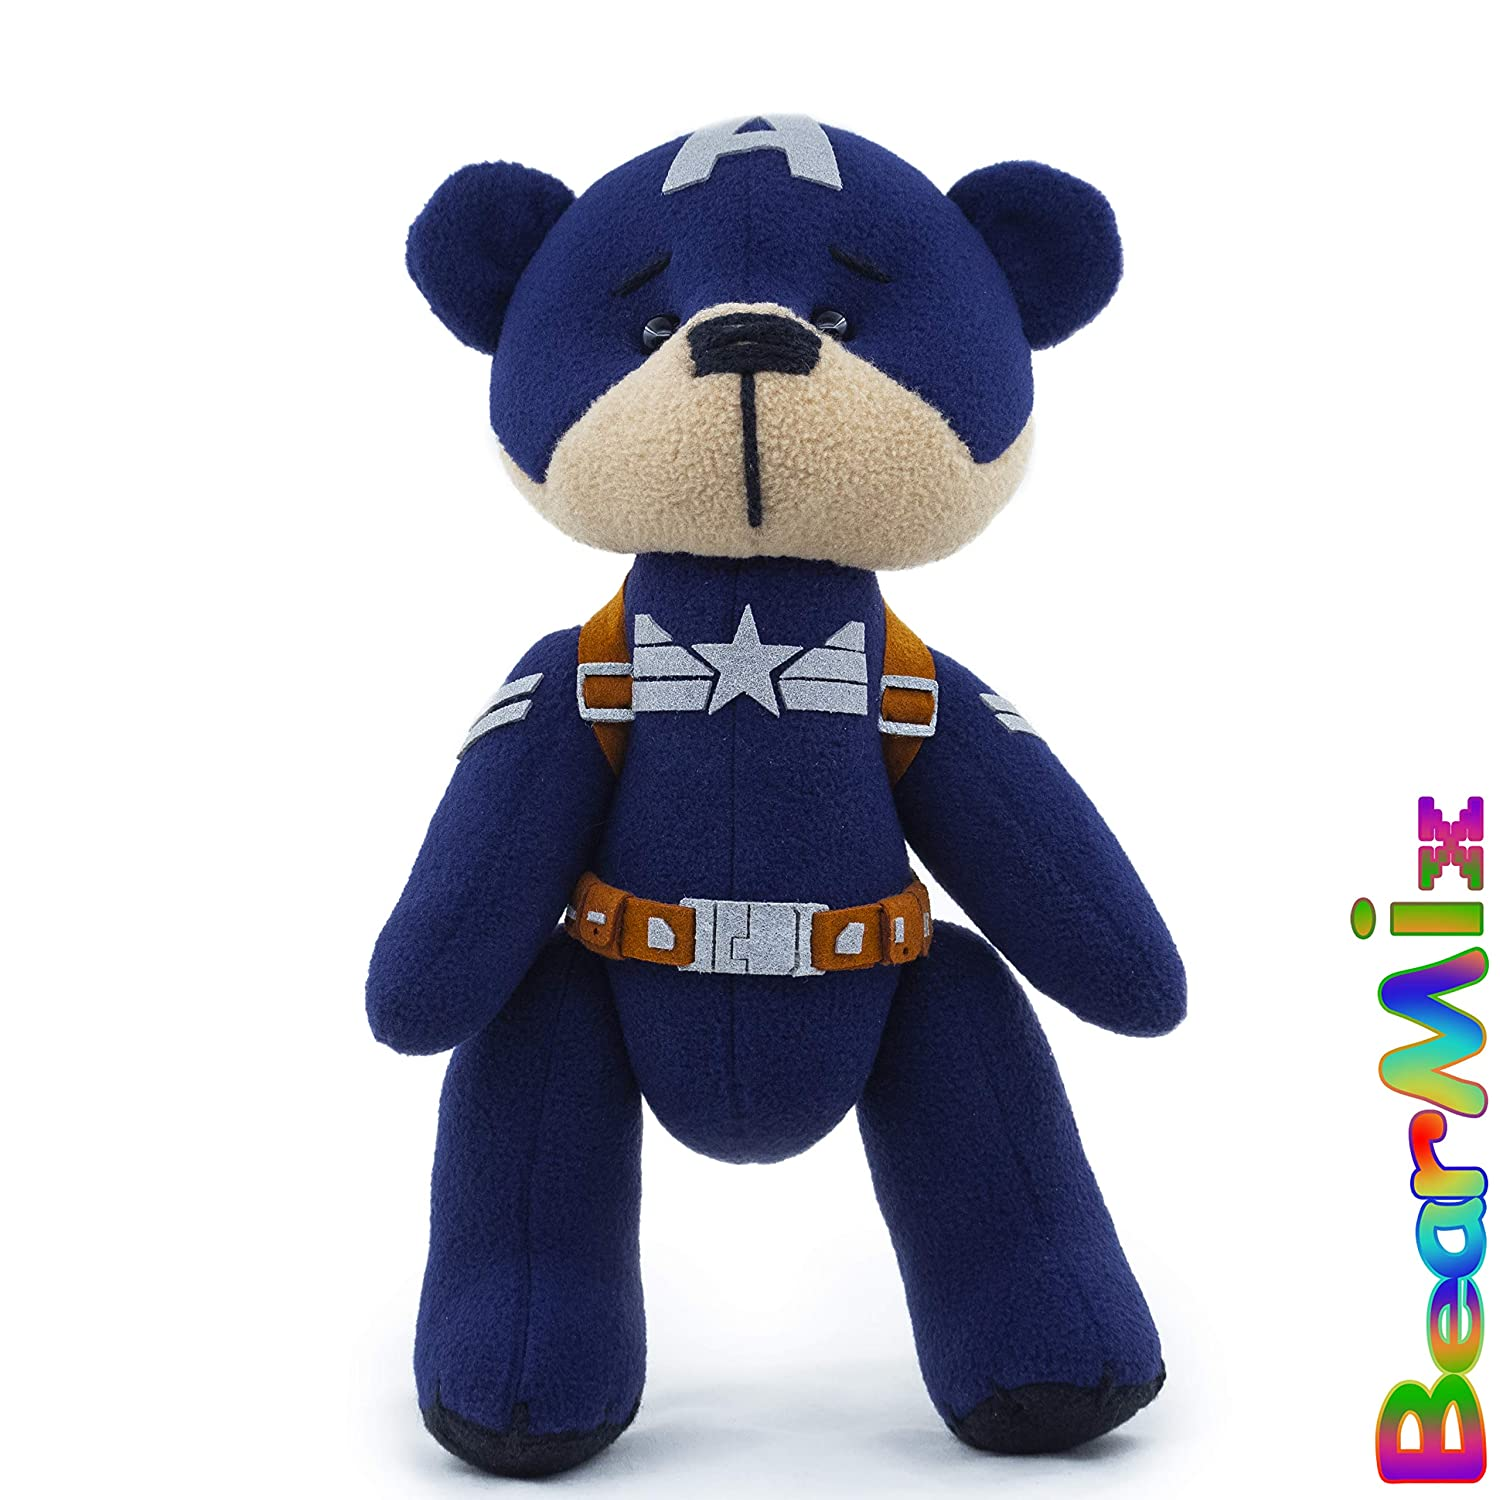 Captain America bear Stealth suit marvel superhero movie comic plush toy avengers steve rogers